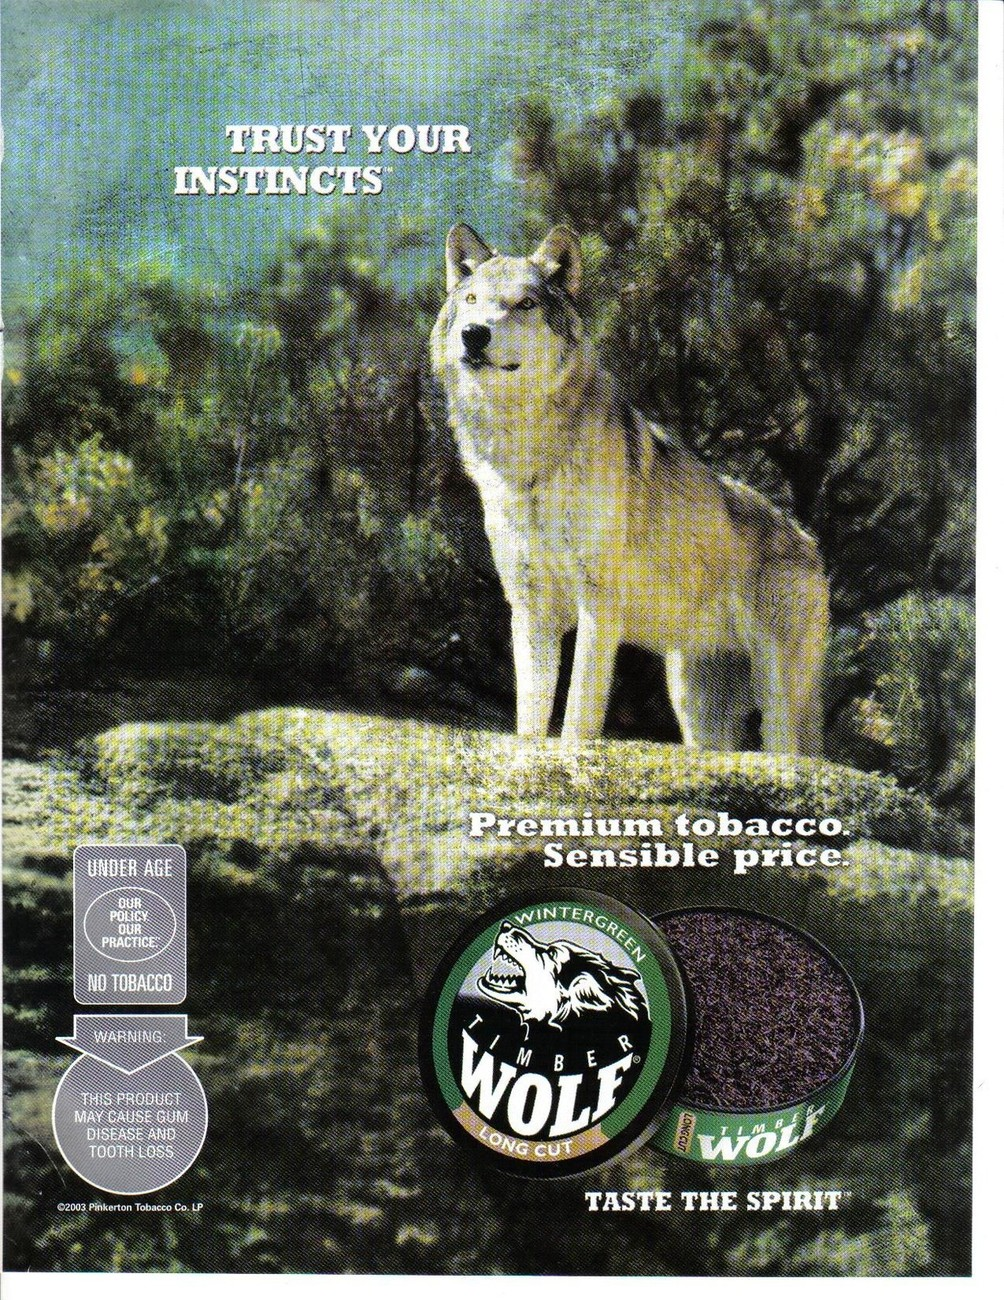 Primary image for Wolf premium Tobacco Color Print Ad. Trust Your Instincts 2003 Very Good